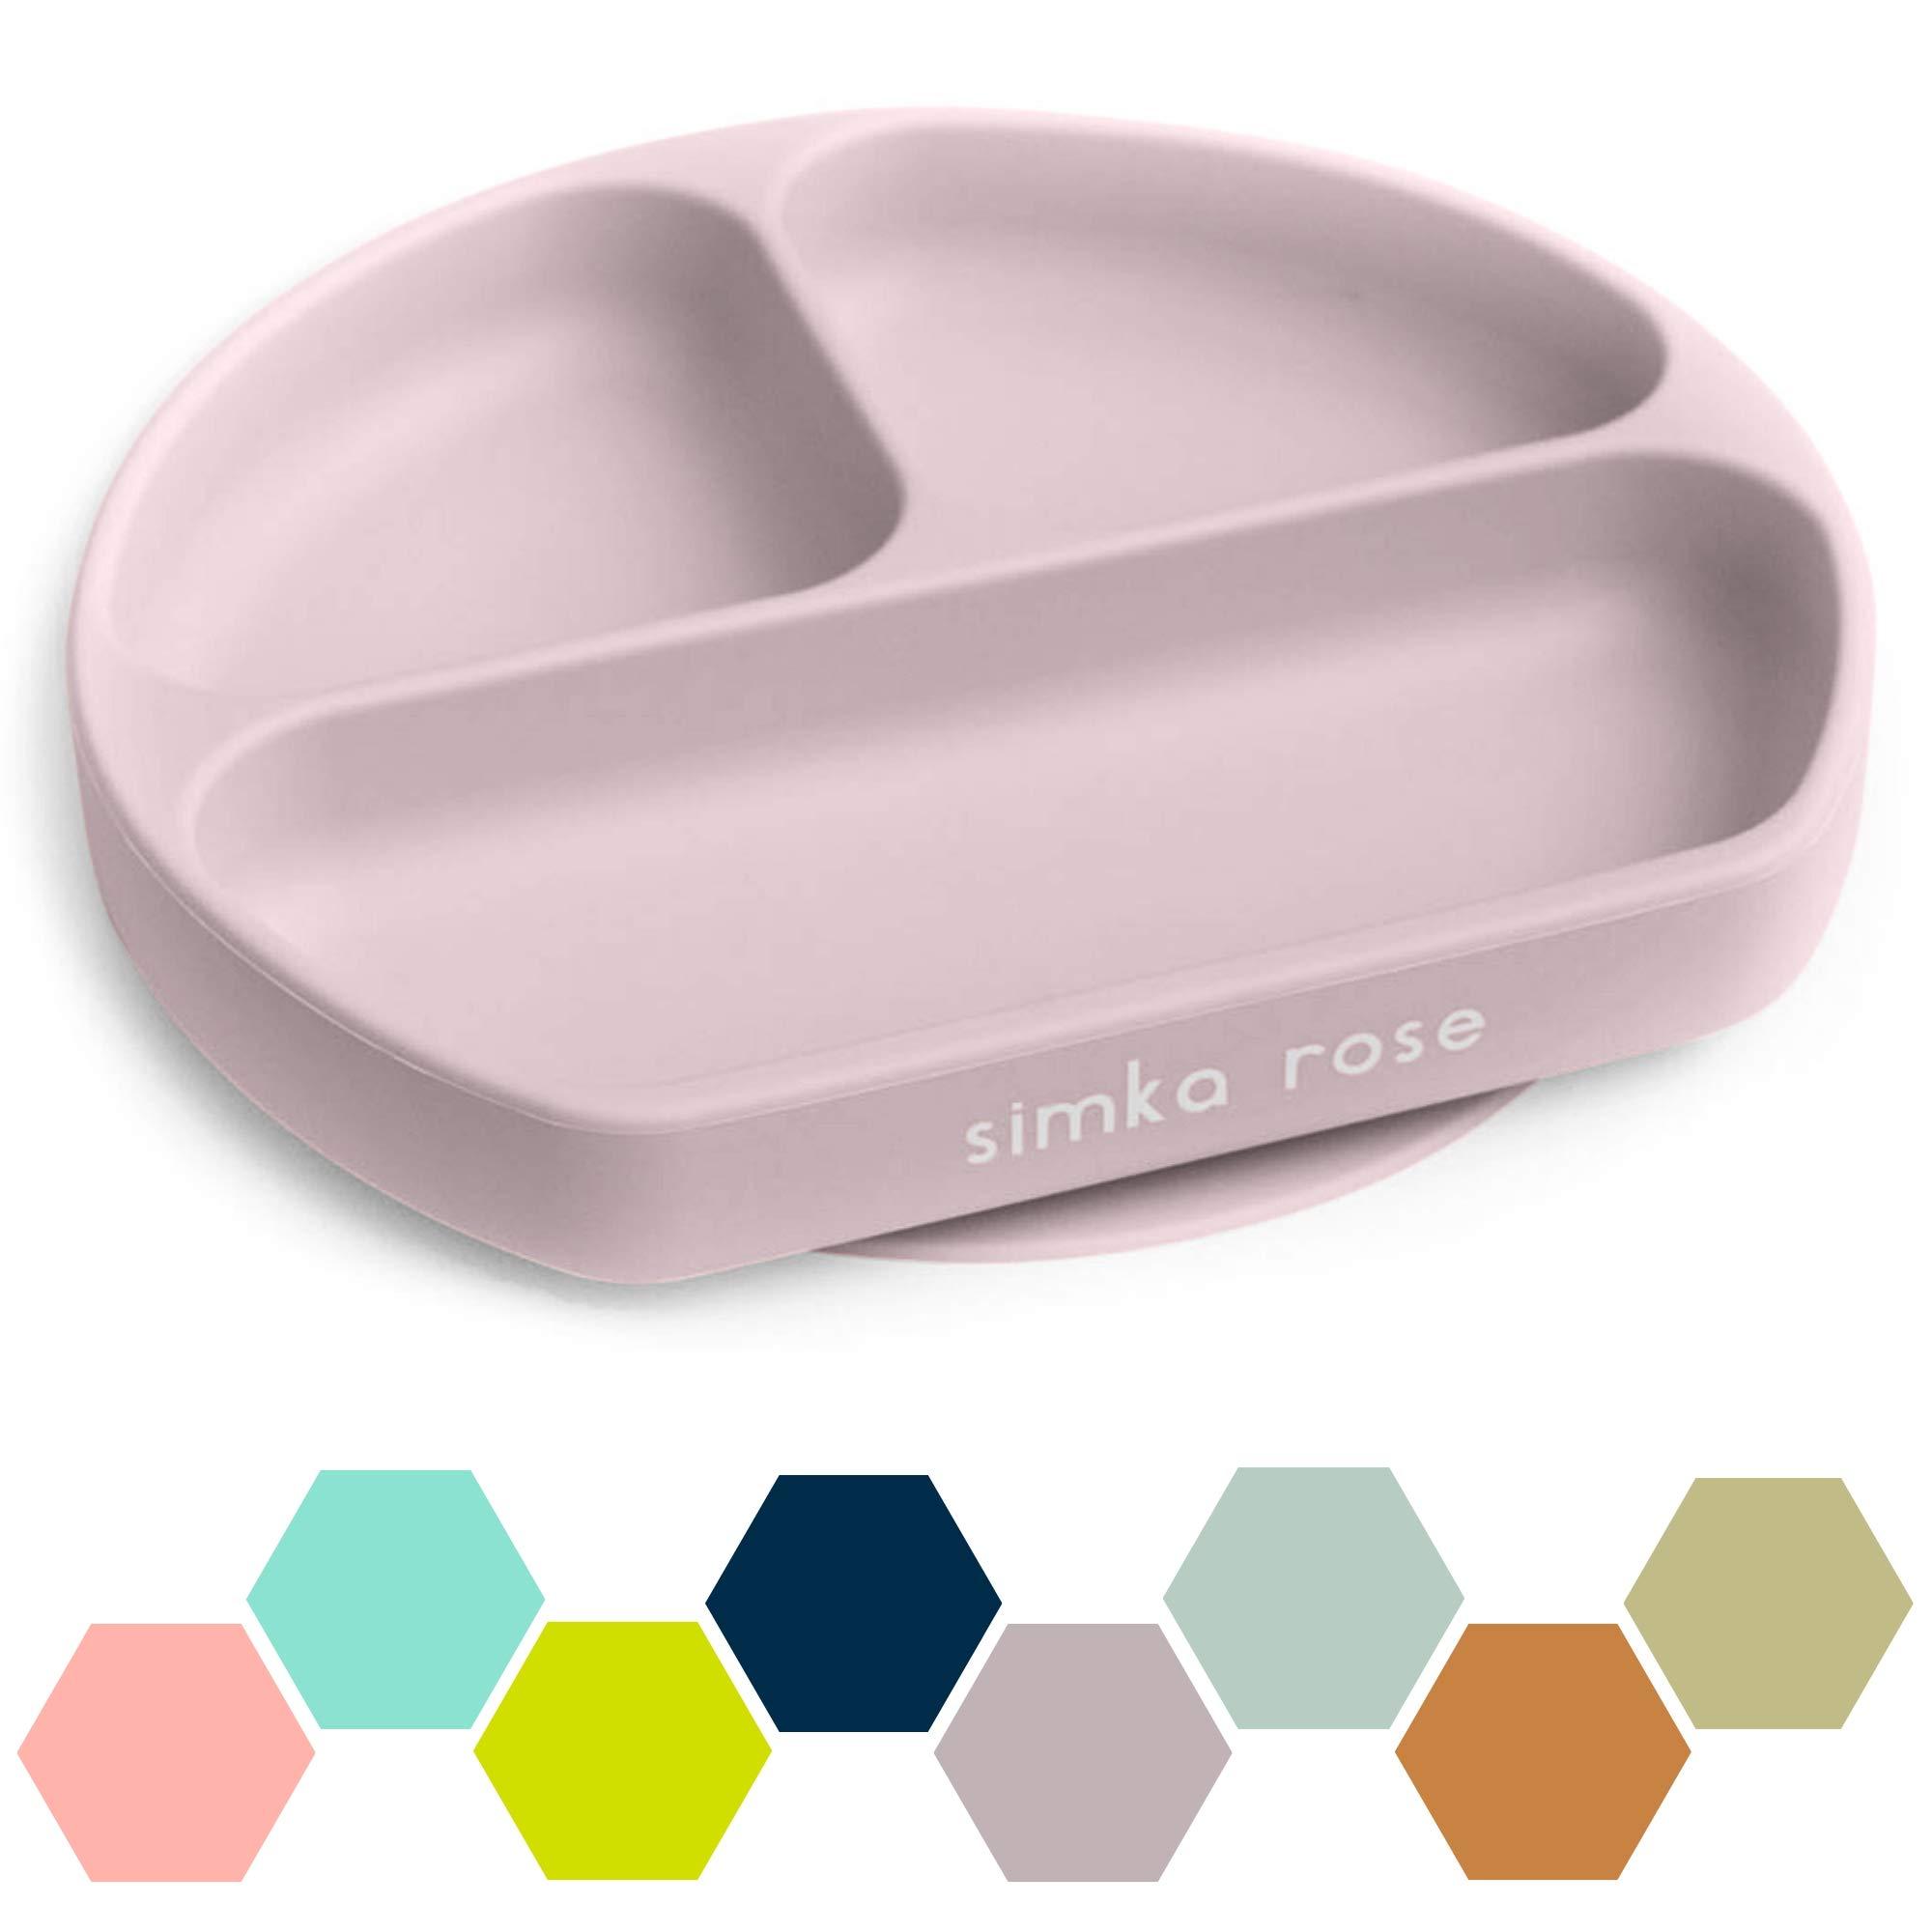 Simka Rose Suction Plate for Baby and Toddler - Divided Silicone Plate - BPA Free - Dishwasher and Microwave Safe - Premium Baby Shower Gift (Lavender)